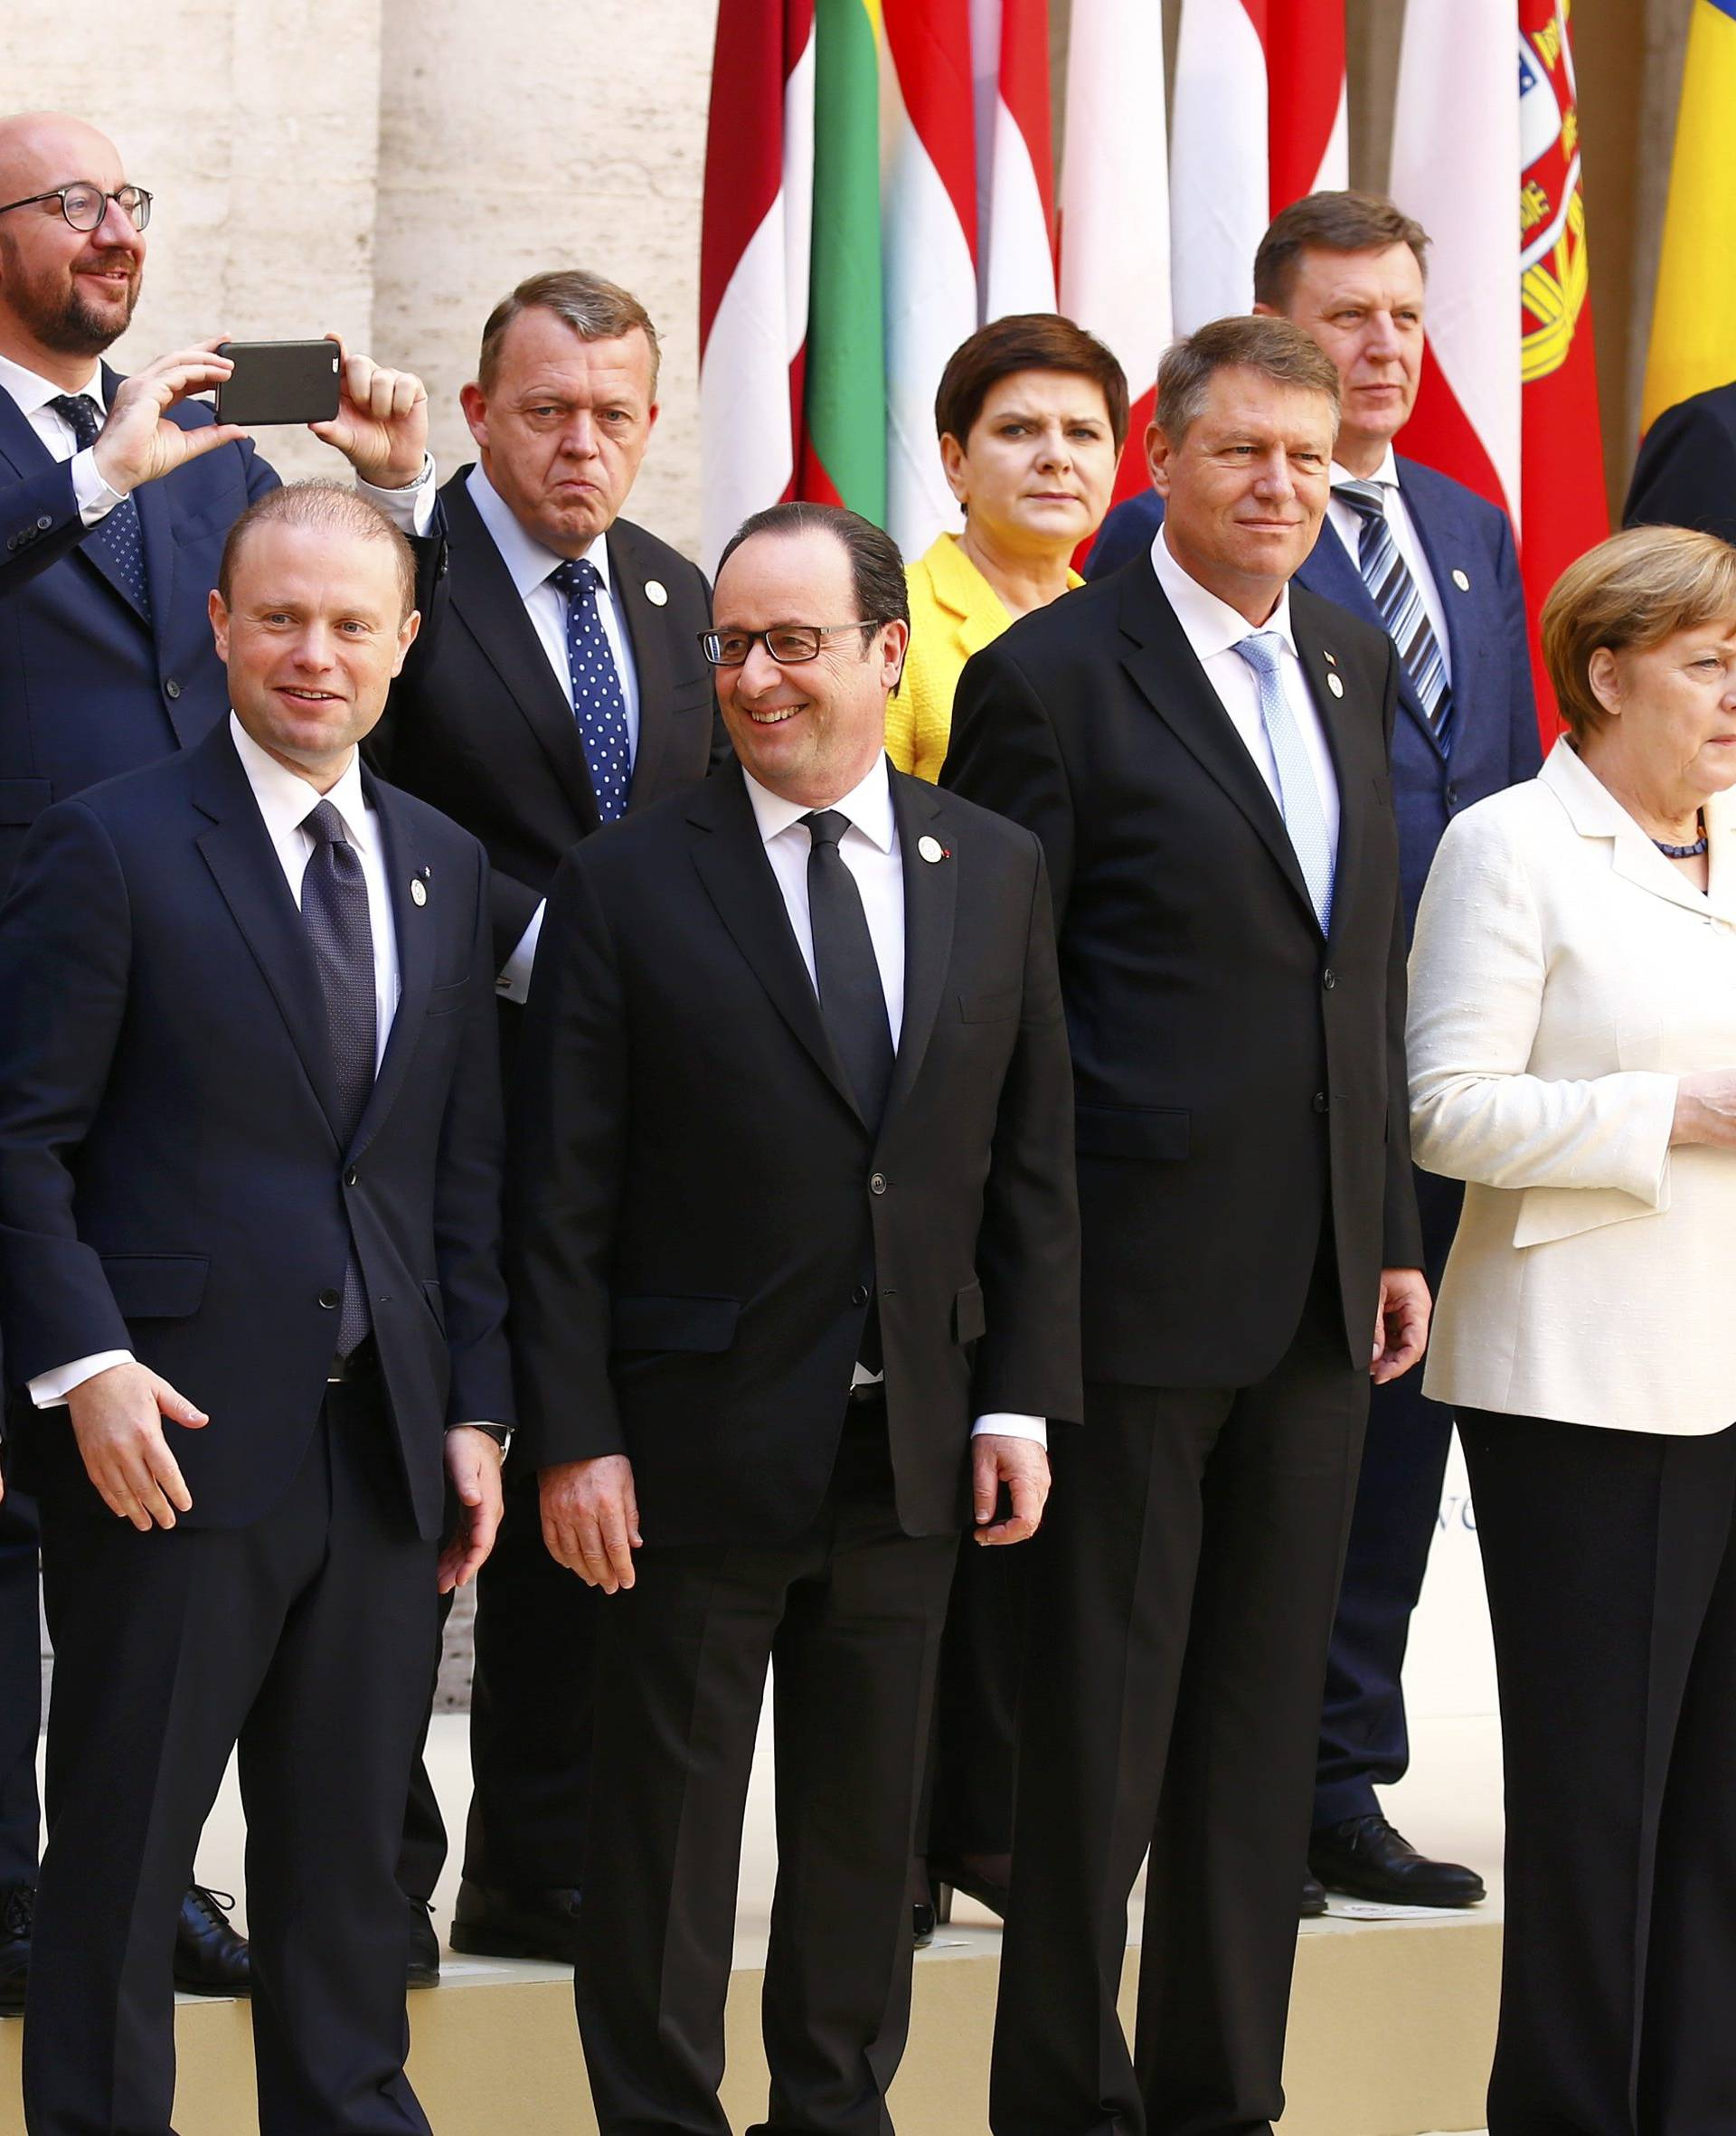 European Union leaders pose for a family photo during a meeting on the 60th anniversary of the Treaty of Rome